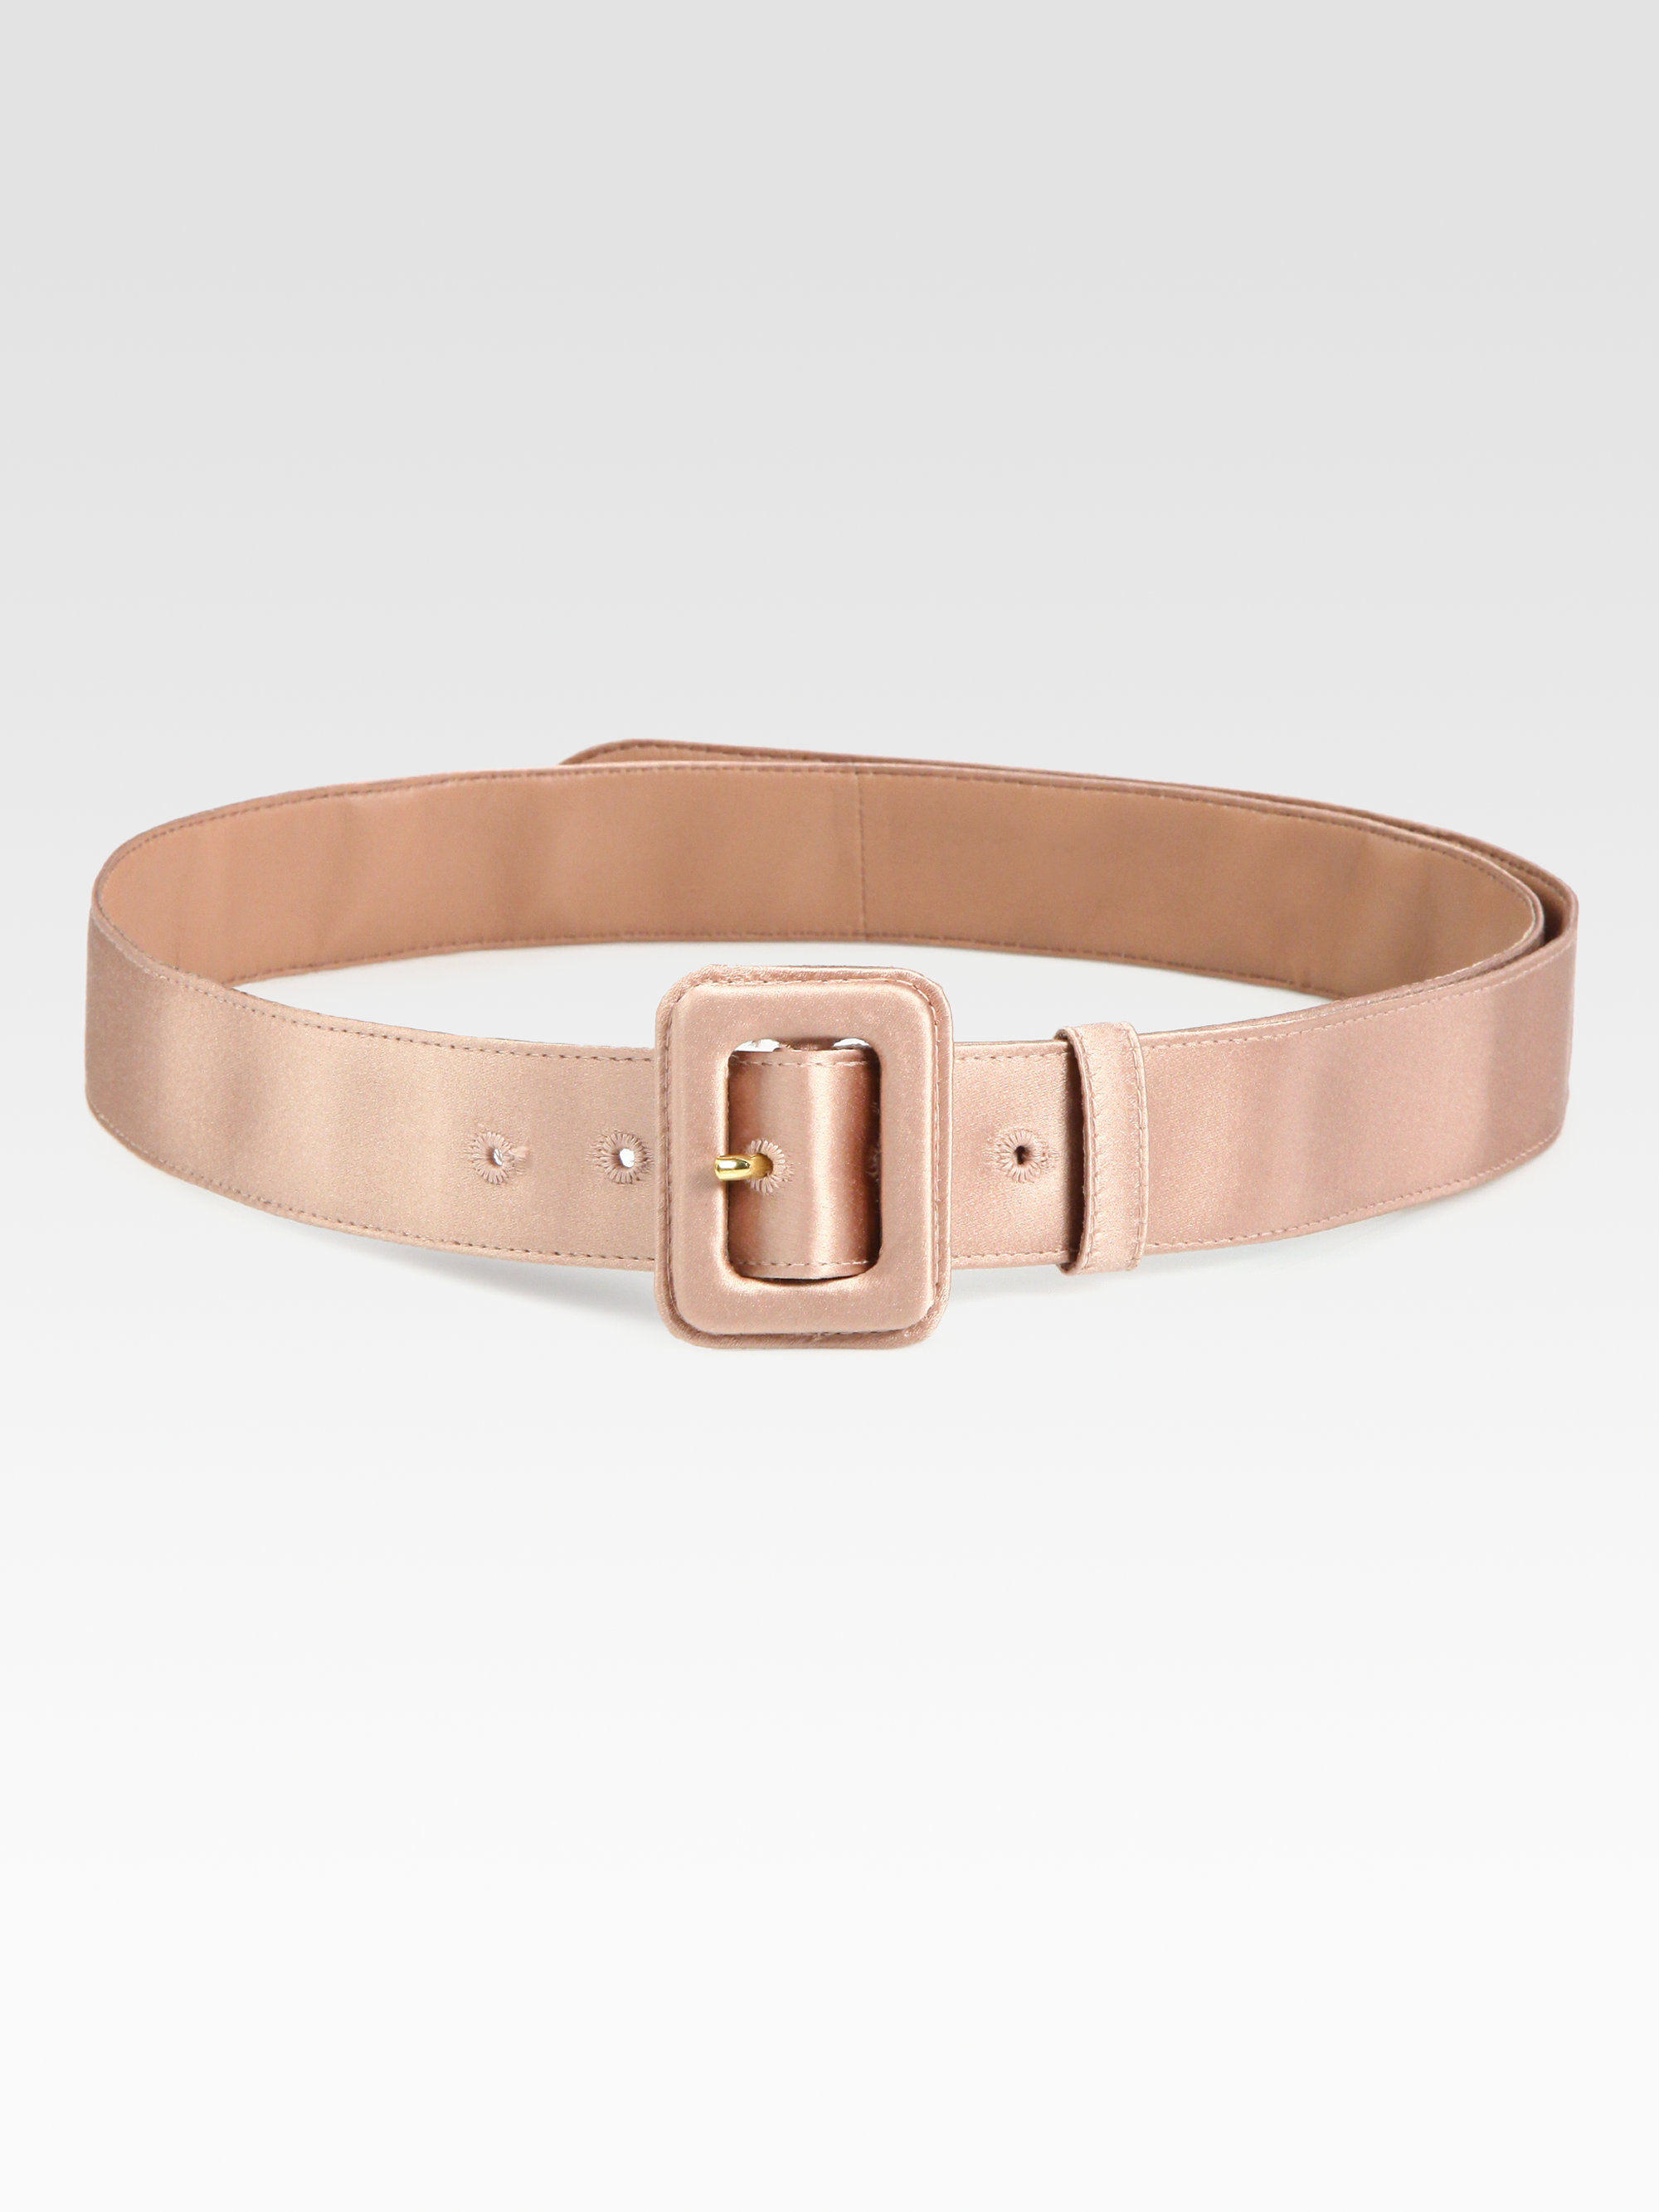 Prada Silk Belt in Beige | Lyst